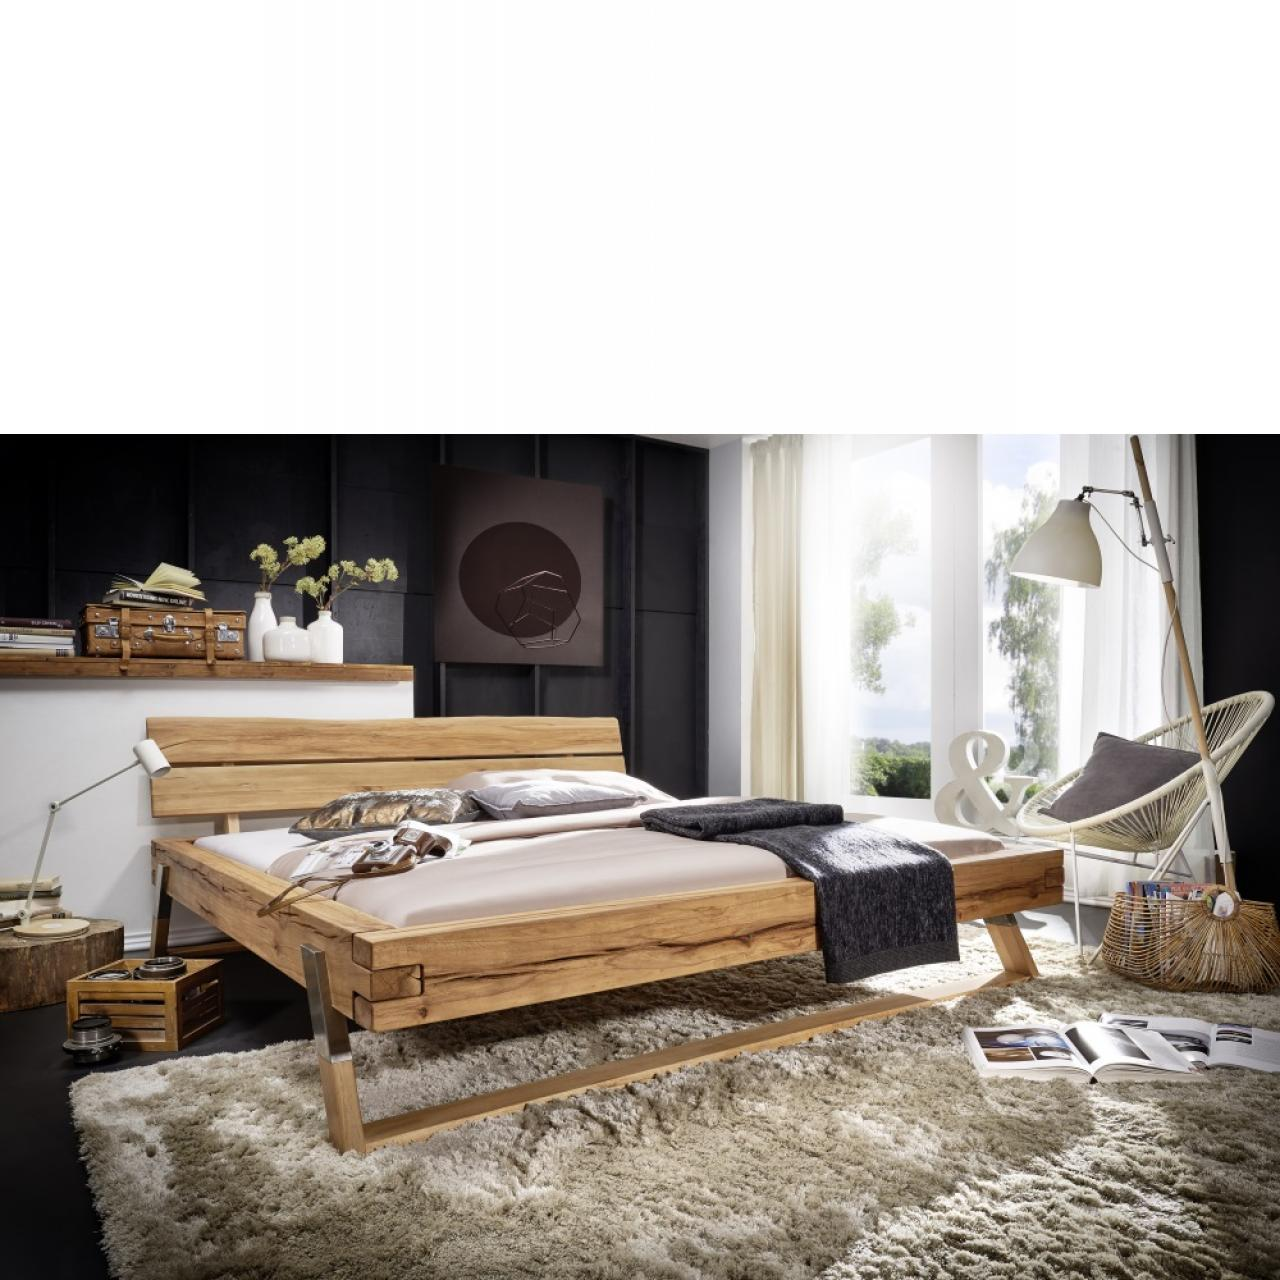 schlafzimmer online kaufen schlafzimmerm bel m bel j hnichen center gmbh. Black Bedroom Furniture Sets. Home Design Ideas